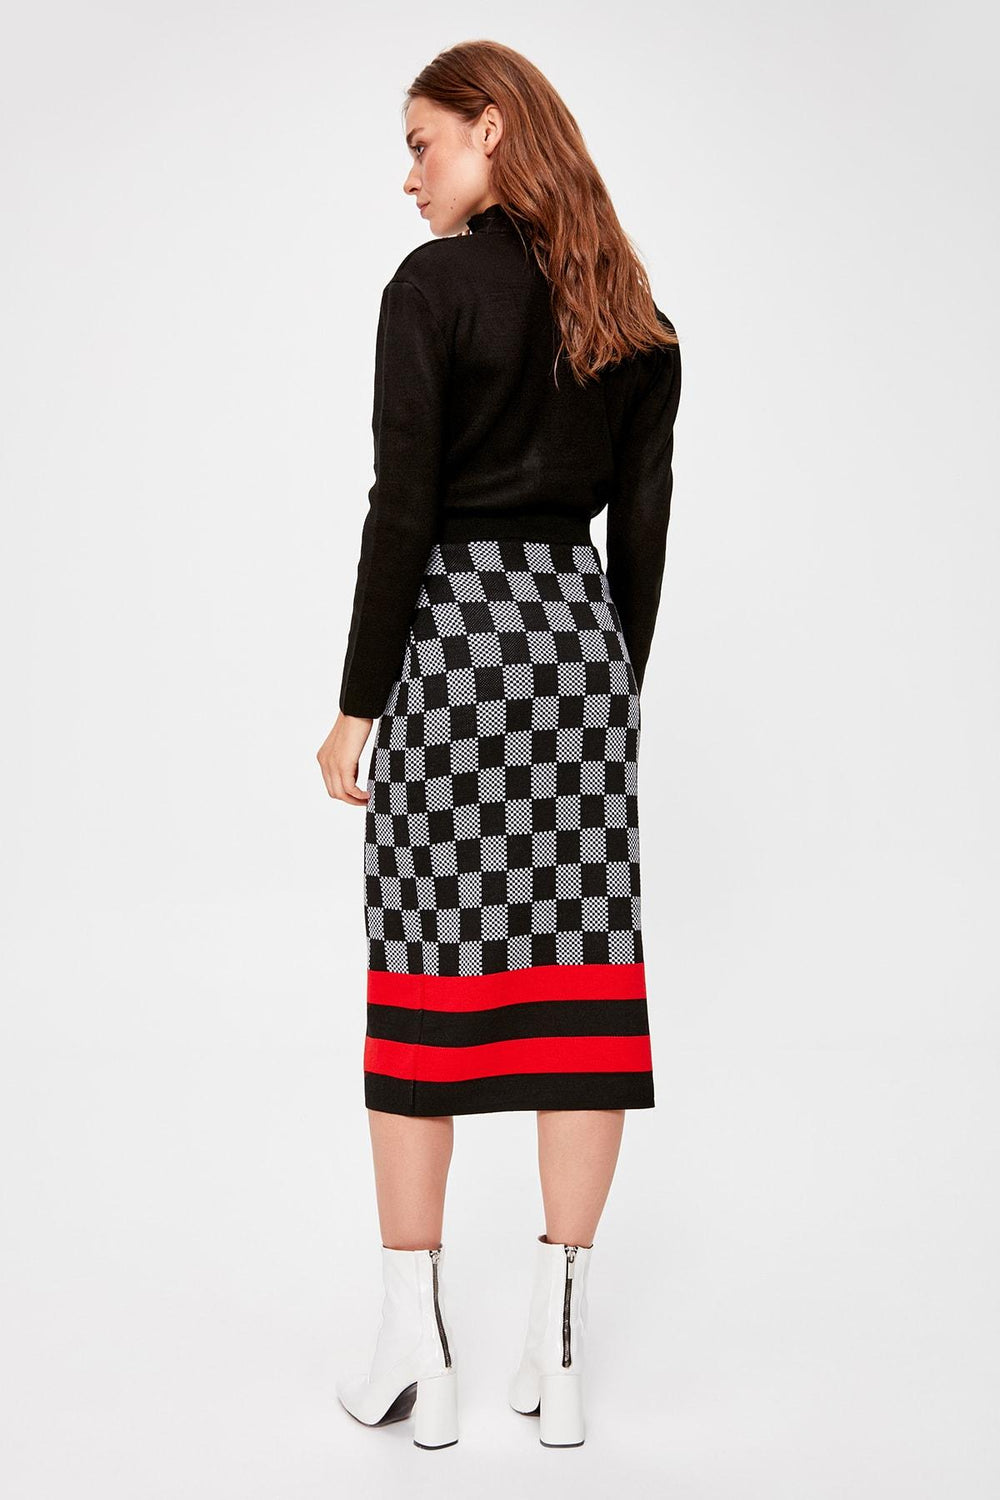 Miss Zut Miss Zut Black Sweater Skirt Miss Zut &CO